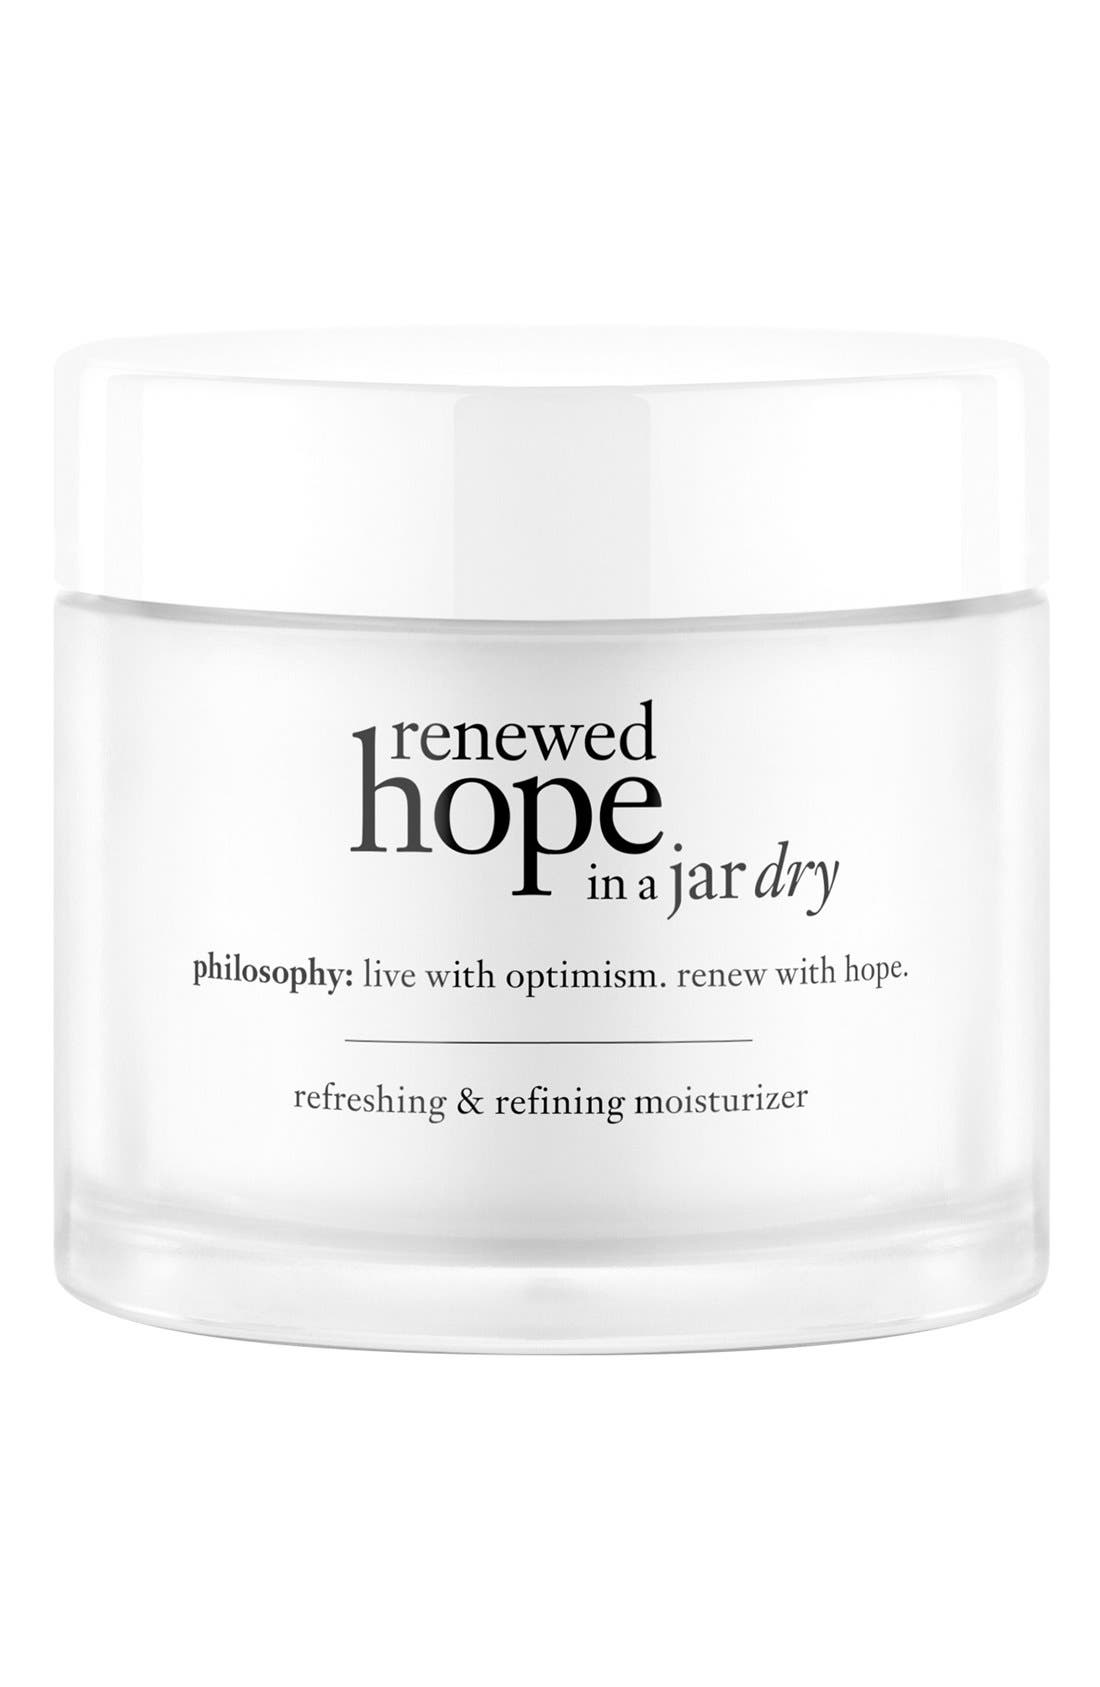 philosophy 'renewed hope in a jar dry' refreshing & refining moisturizer